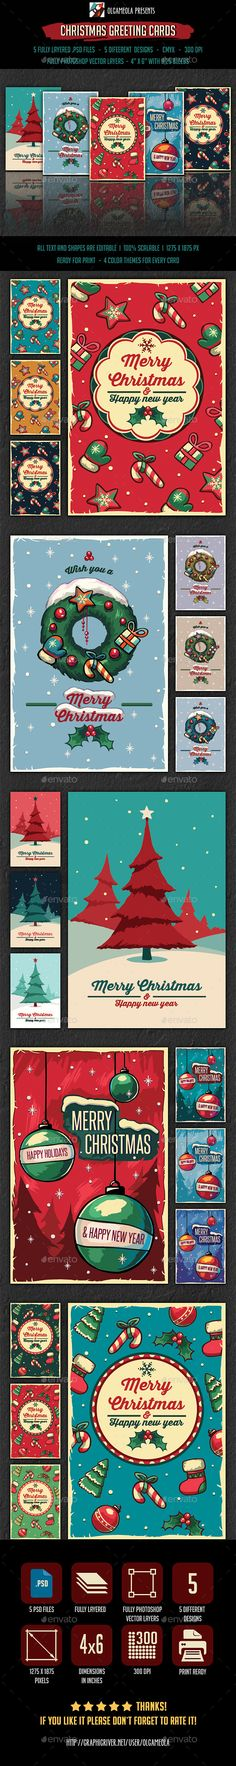 Christmas Greeting Cards Template PSD #design #xmas Download: http://graphicriver.net/item/christmas-greeting-cards-/14043518?ref=ksioks